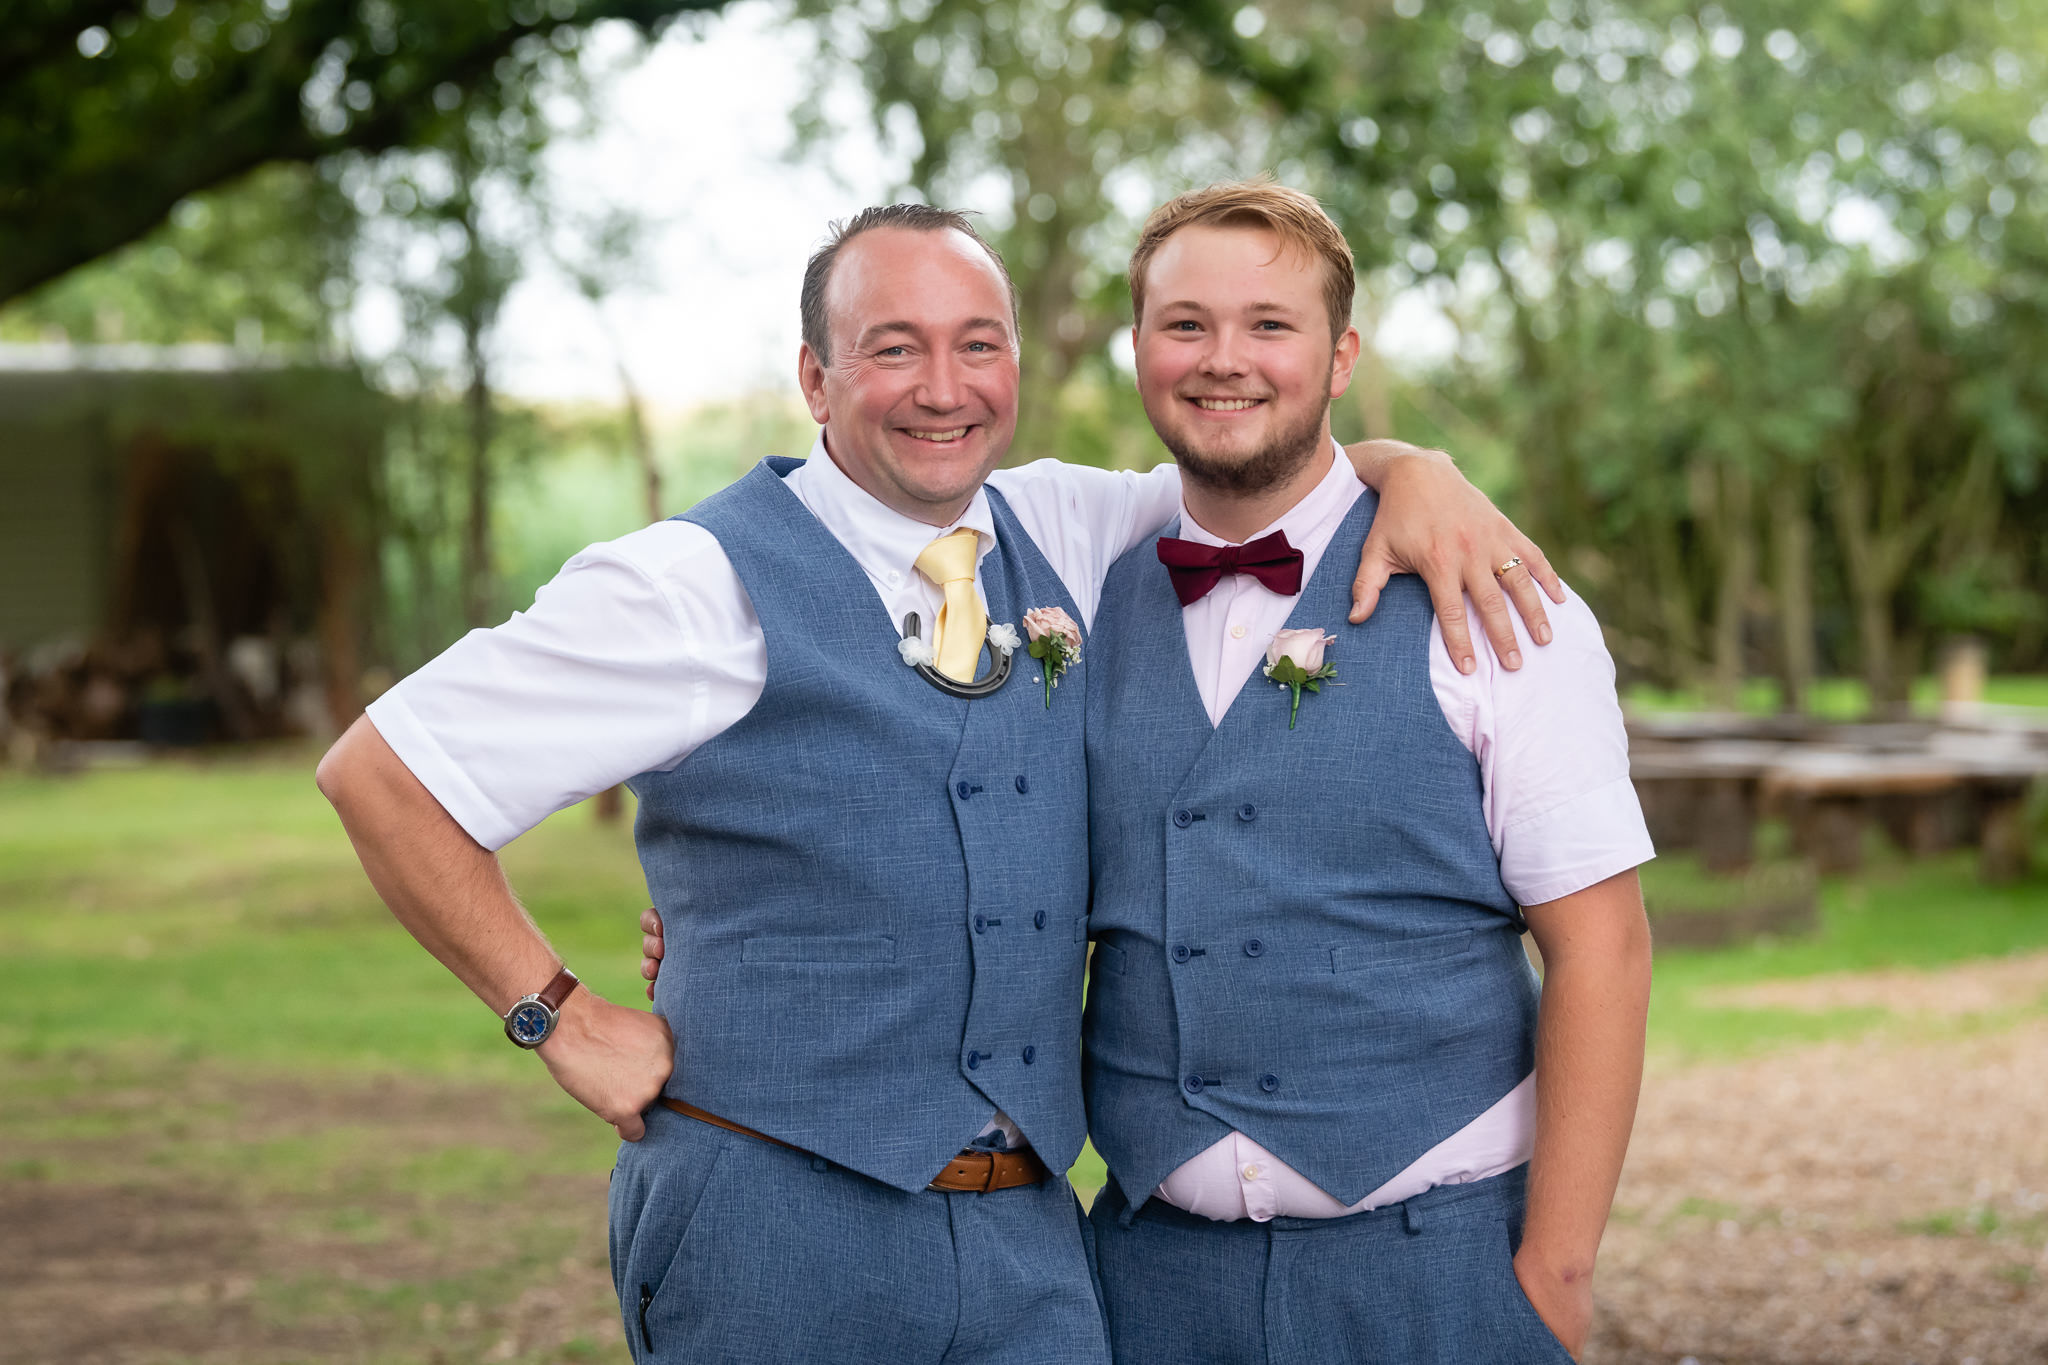 The groom and his son